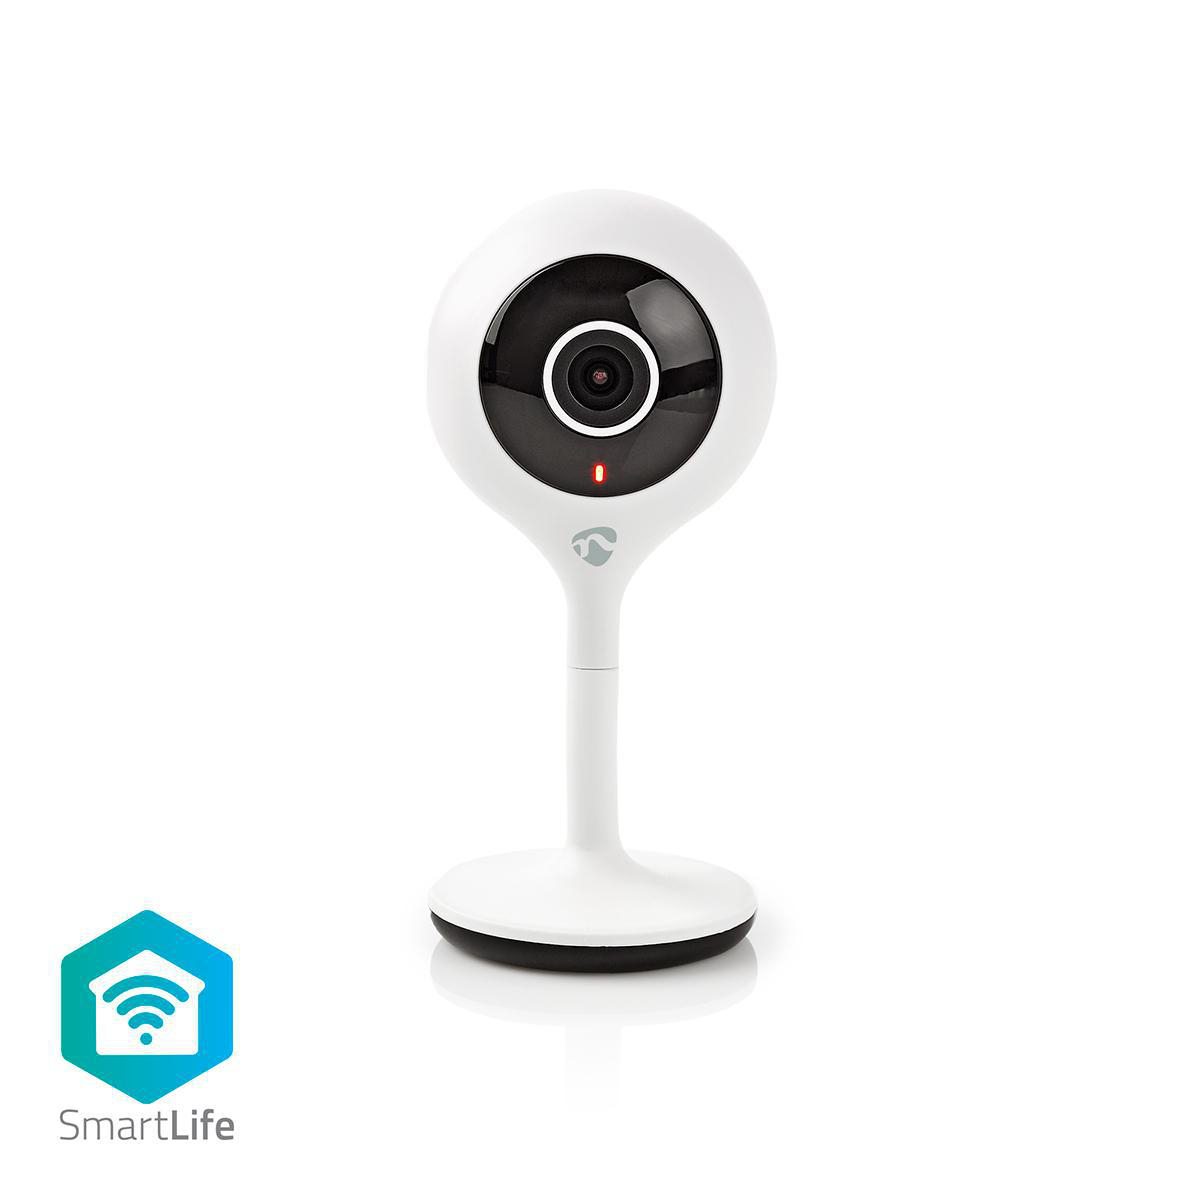 How to install... the SmartLife 'FlexNeck' Indoor Camera